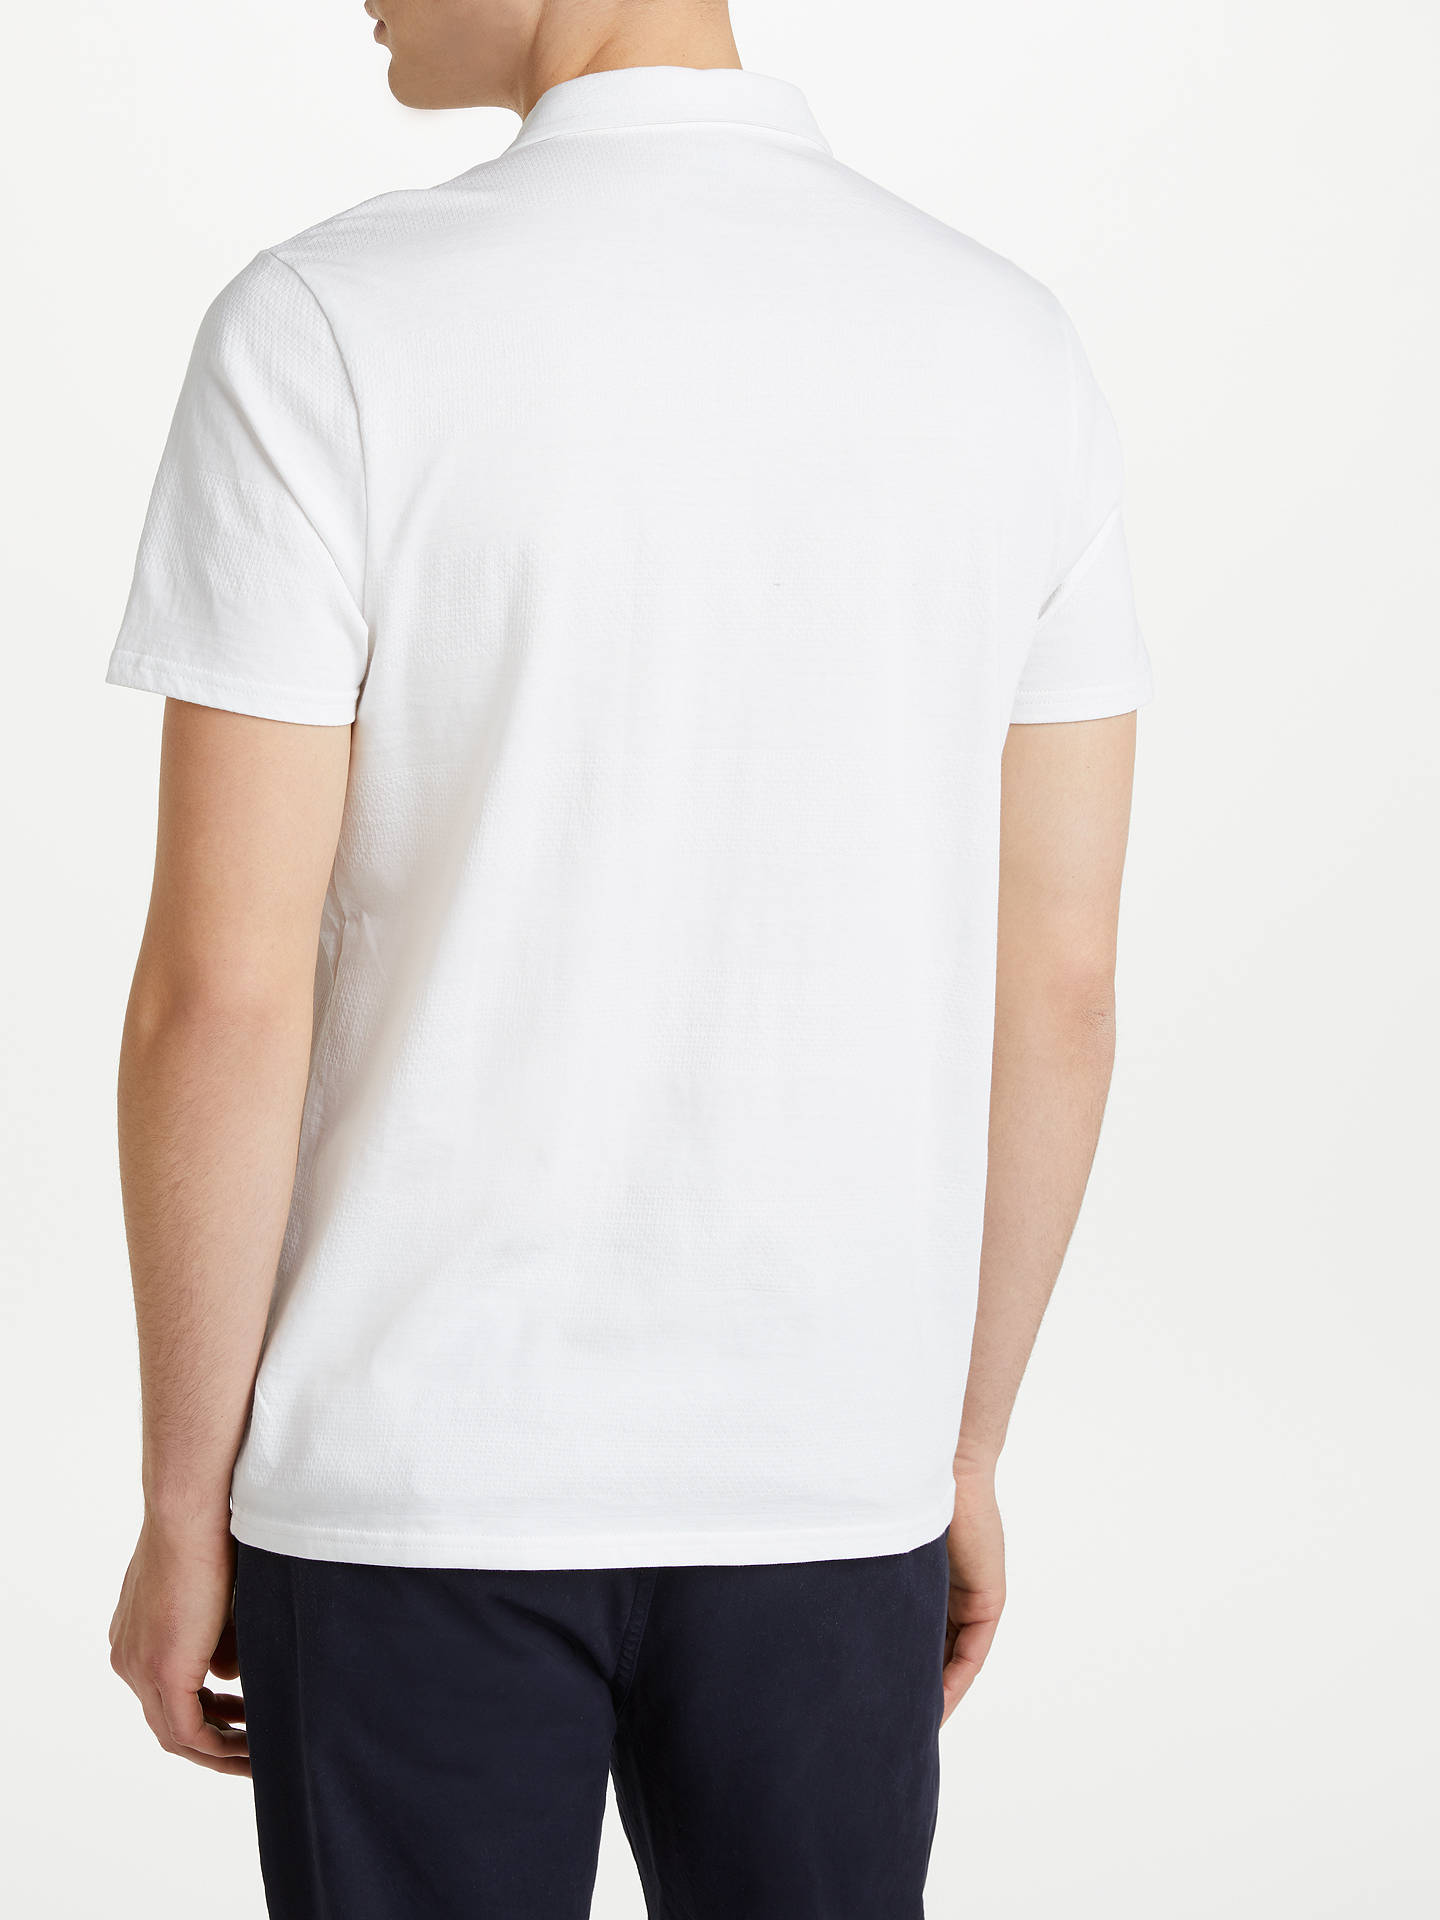 BuyKin Texture Stripe Polo Shirt, White, S Online at johnlewis.com